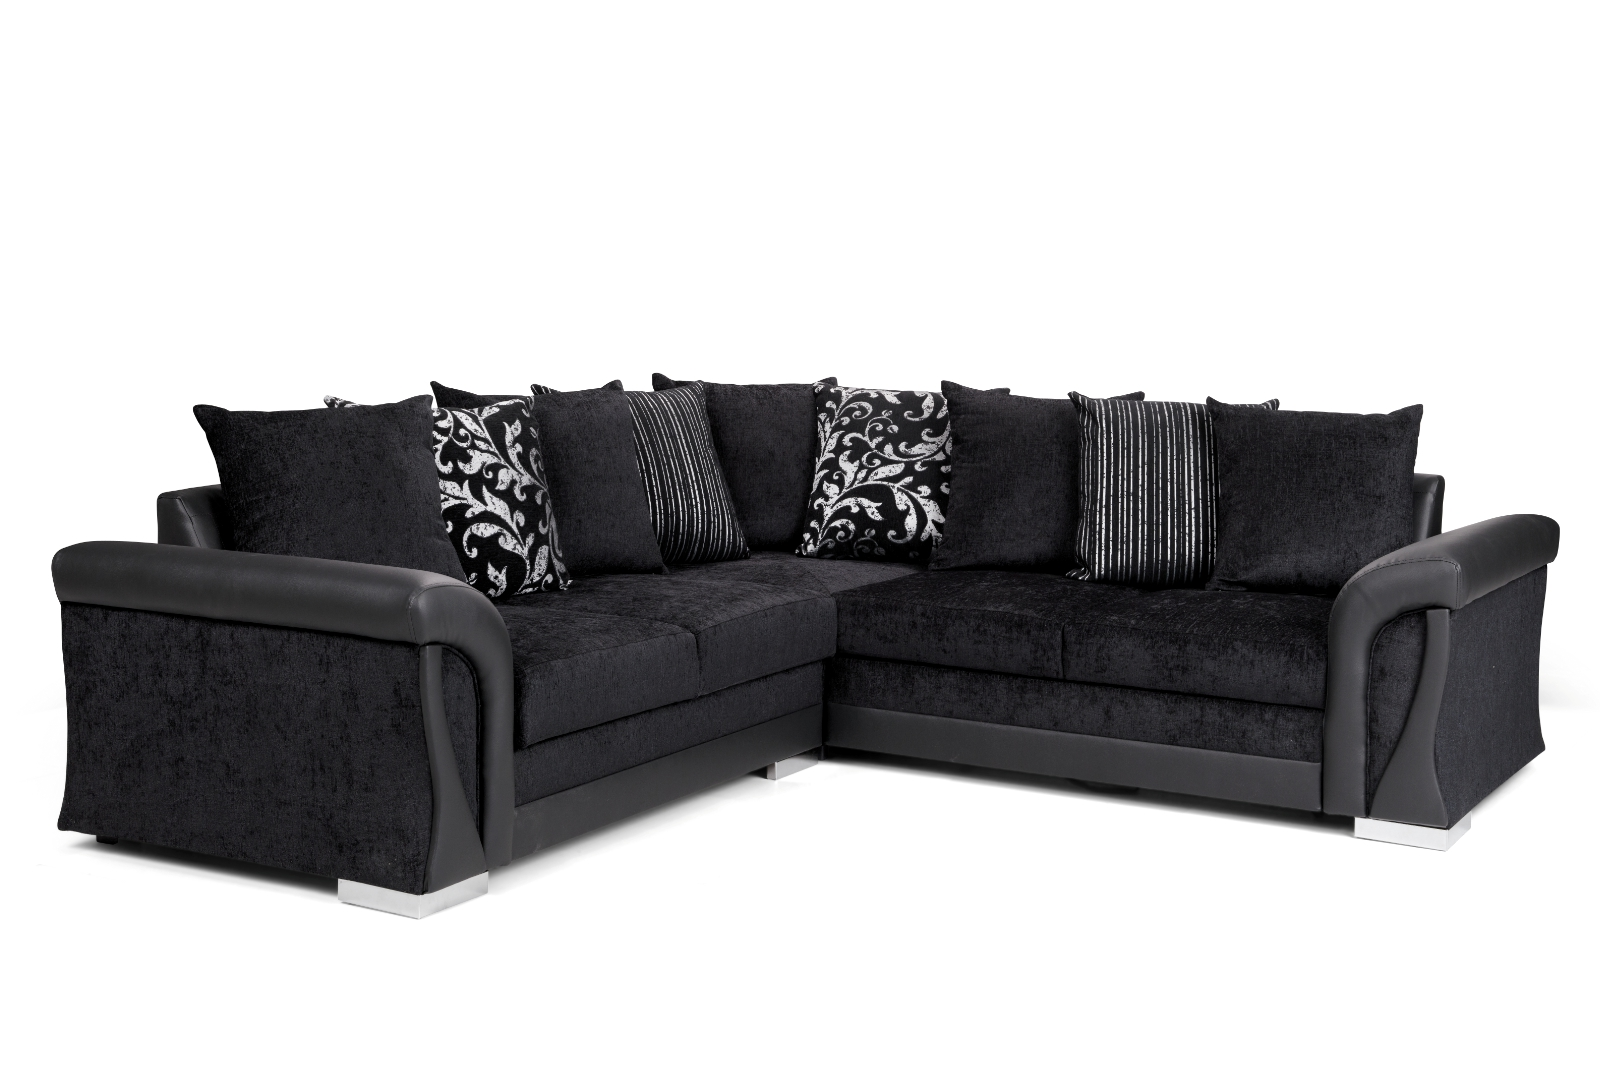 Vigo Corner Sofa Bed with Storage